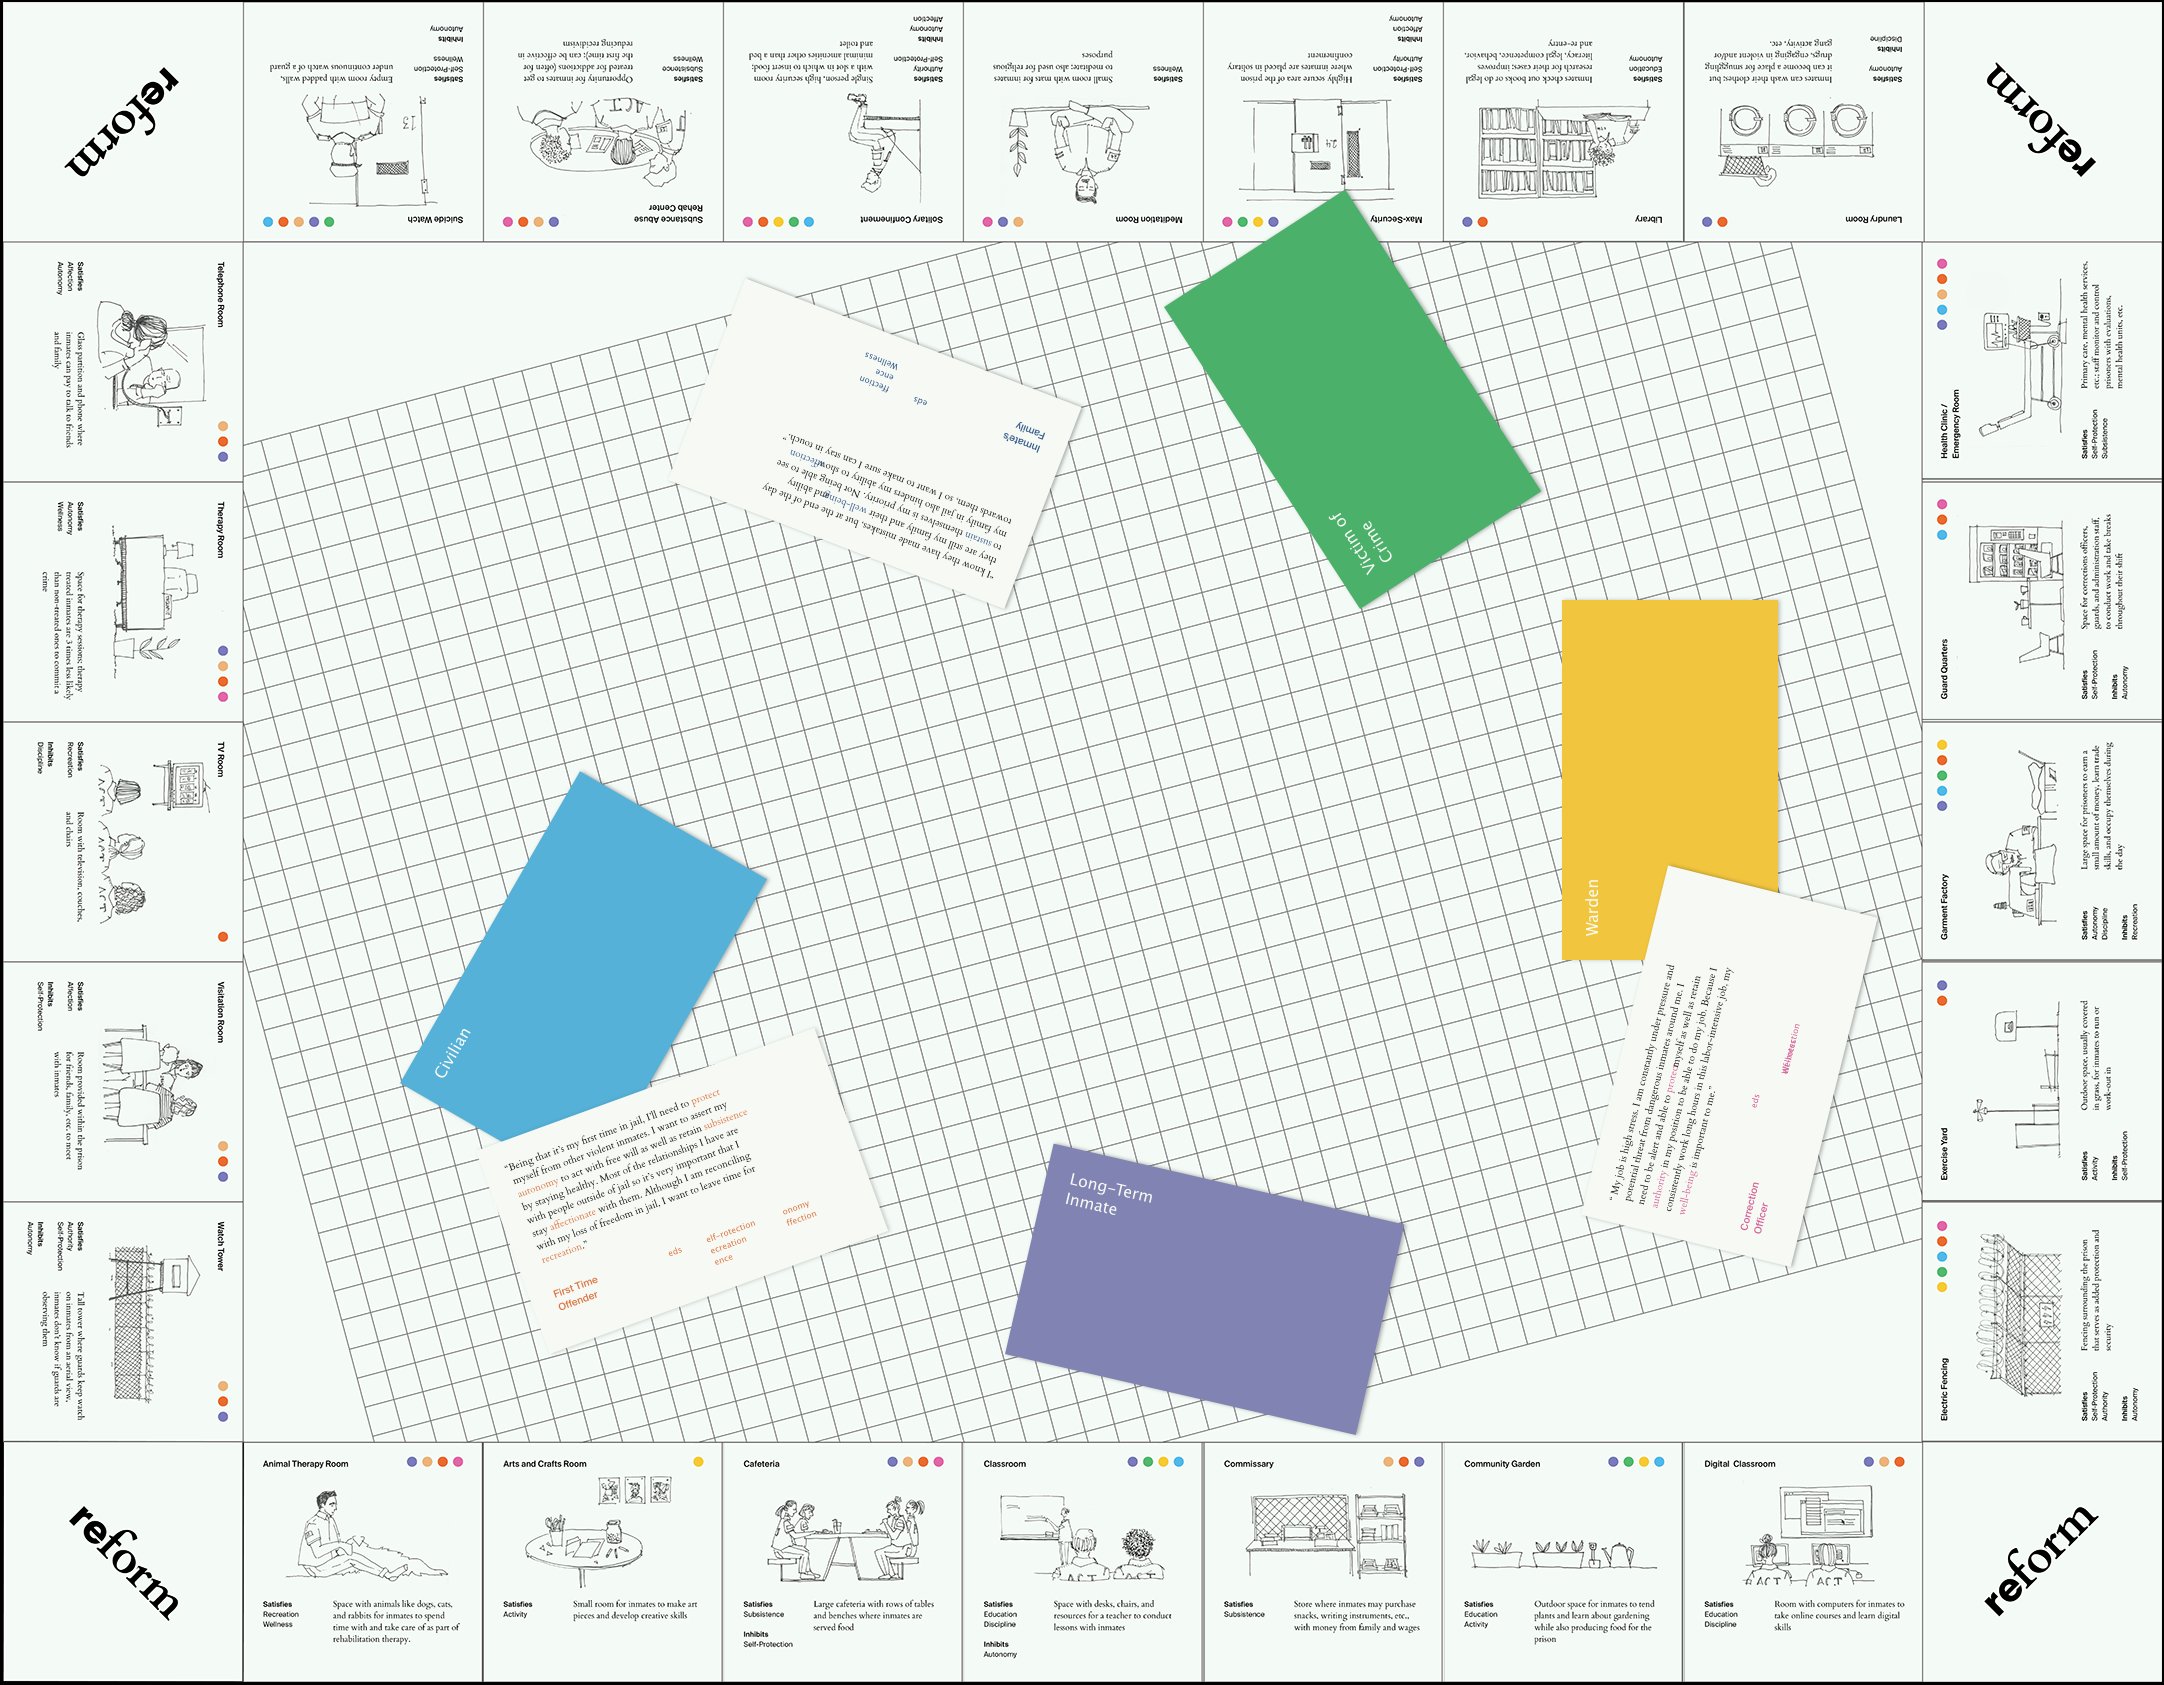 The final Gameboard and character cards